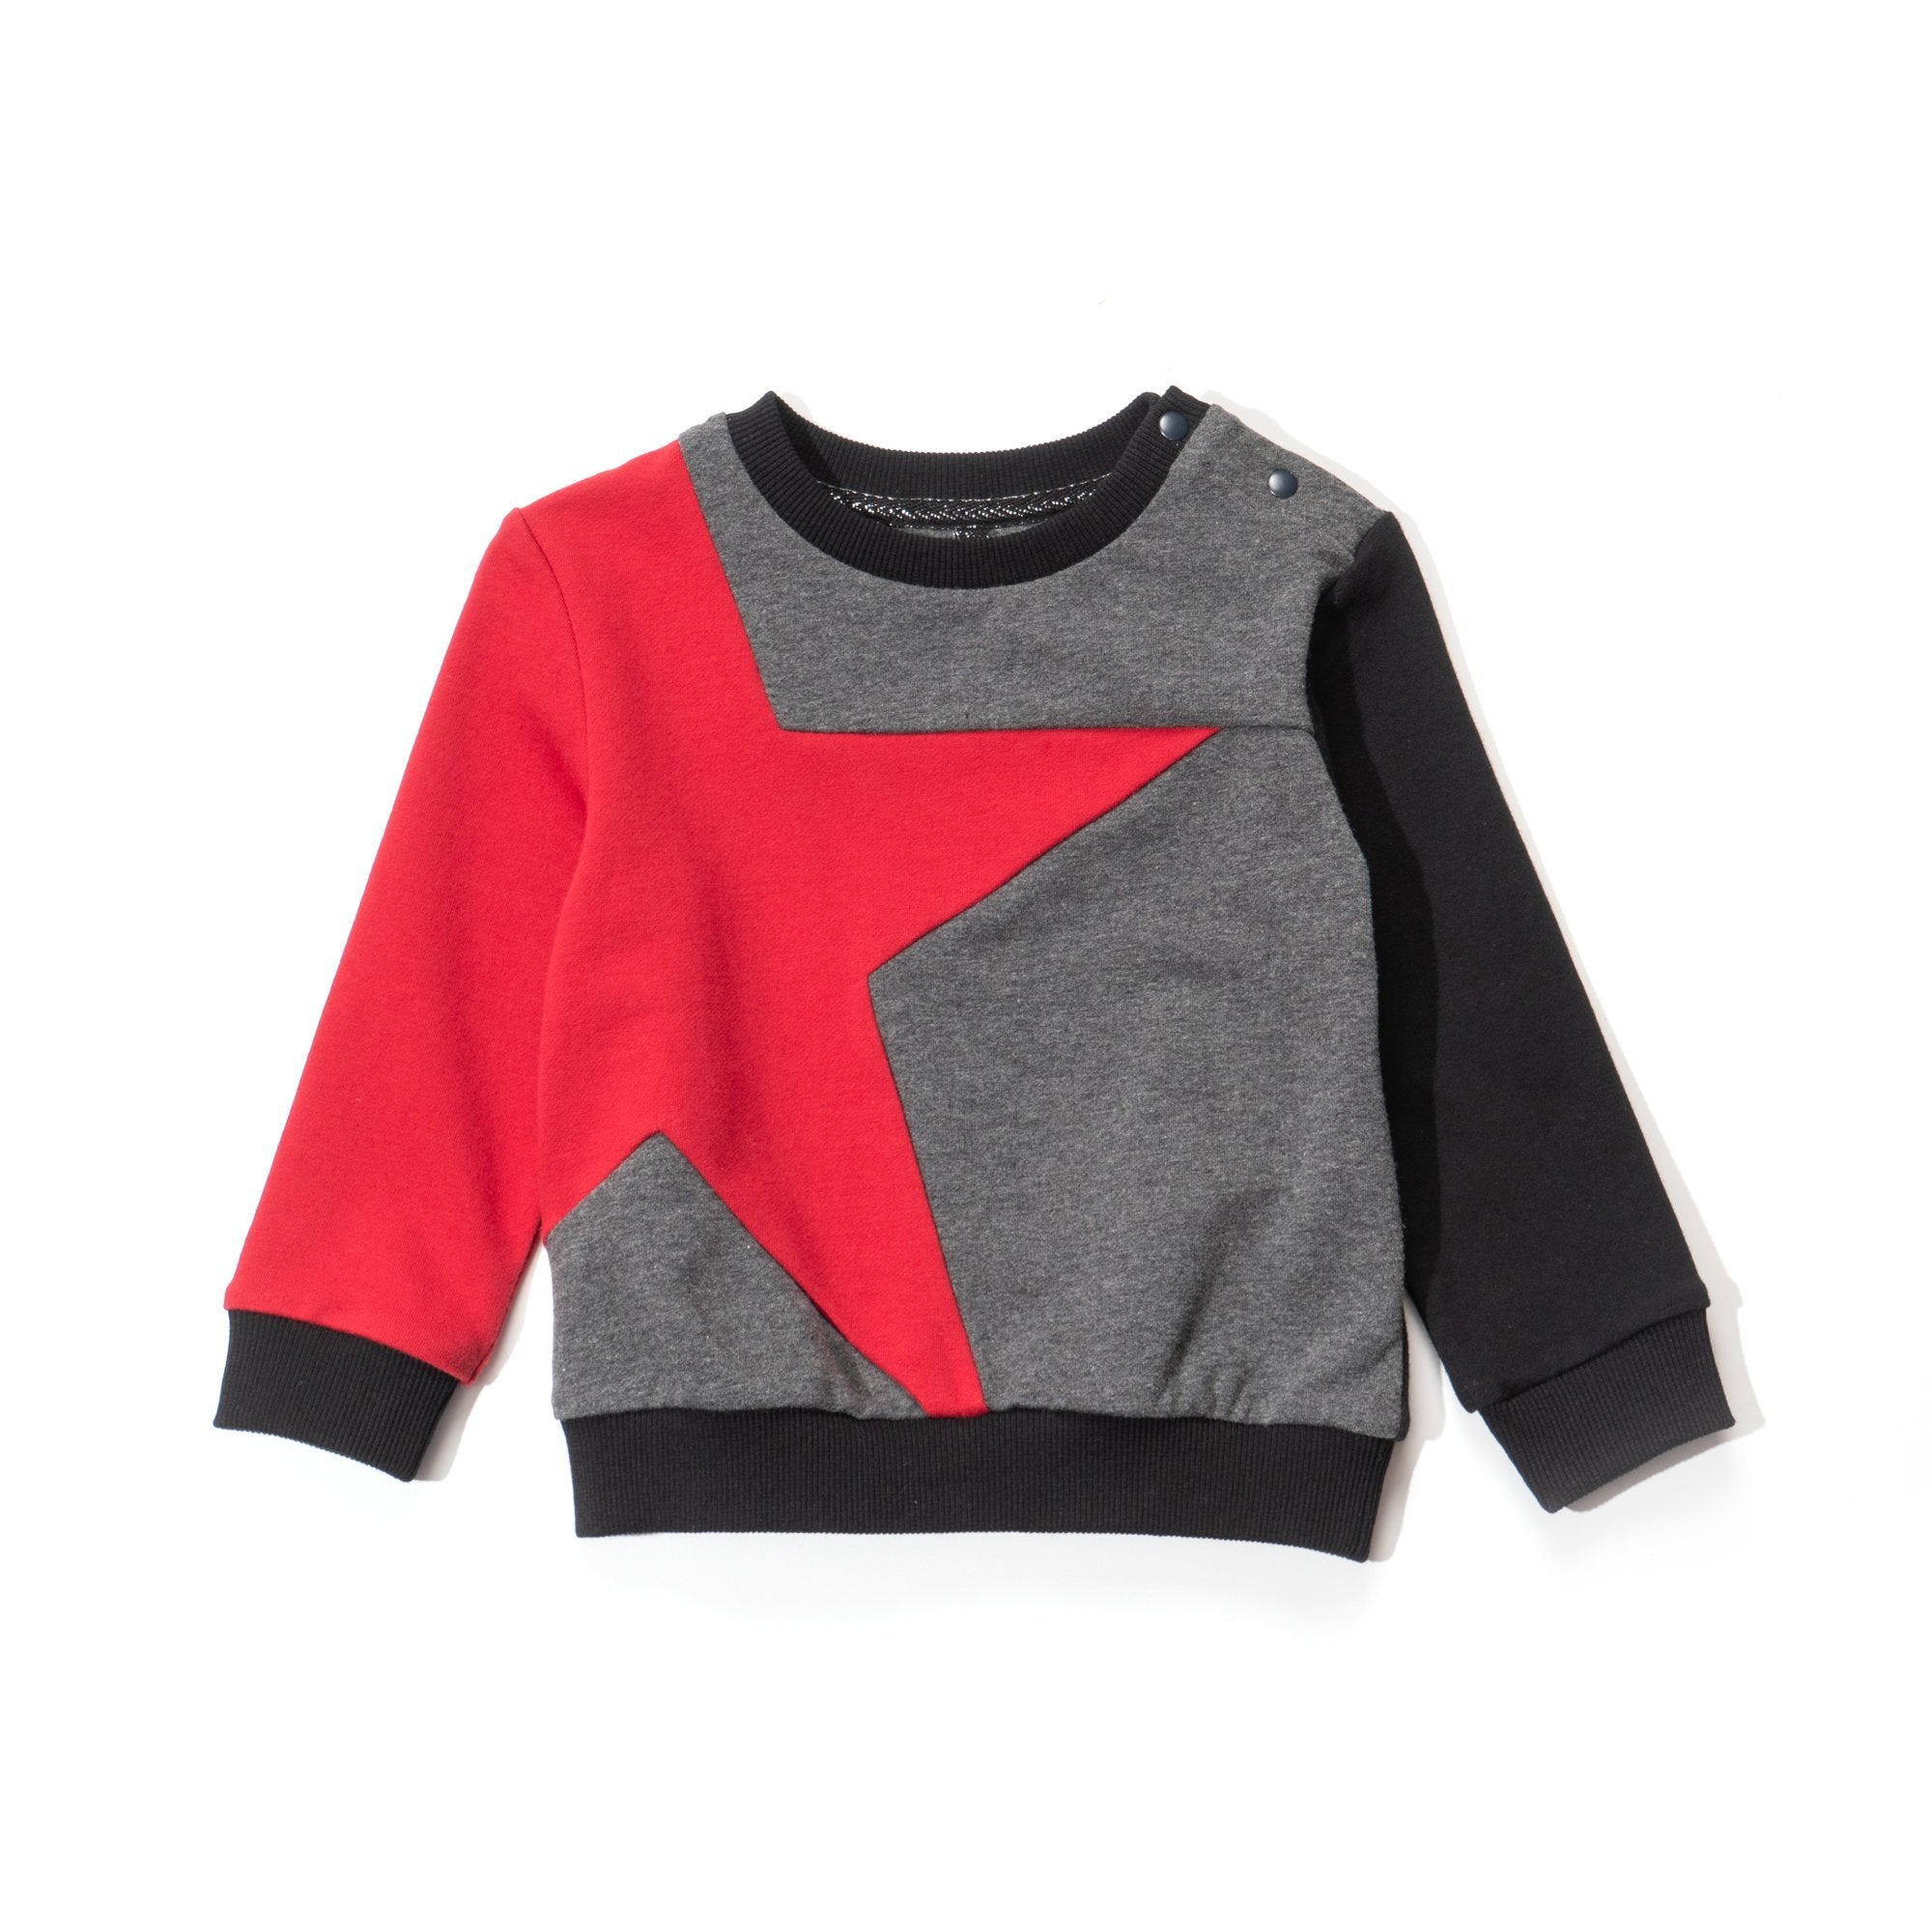 Poney Boys Long Sleeve Sweatshirt 2047